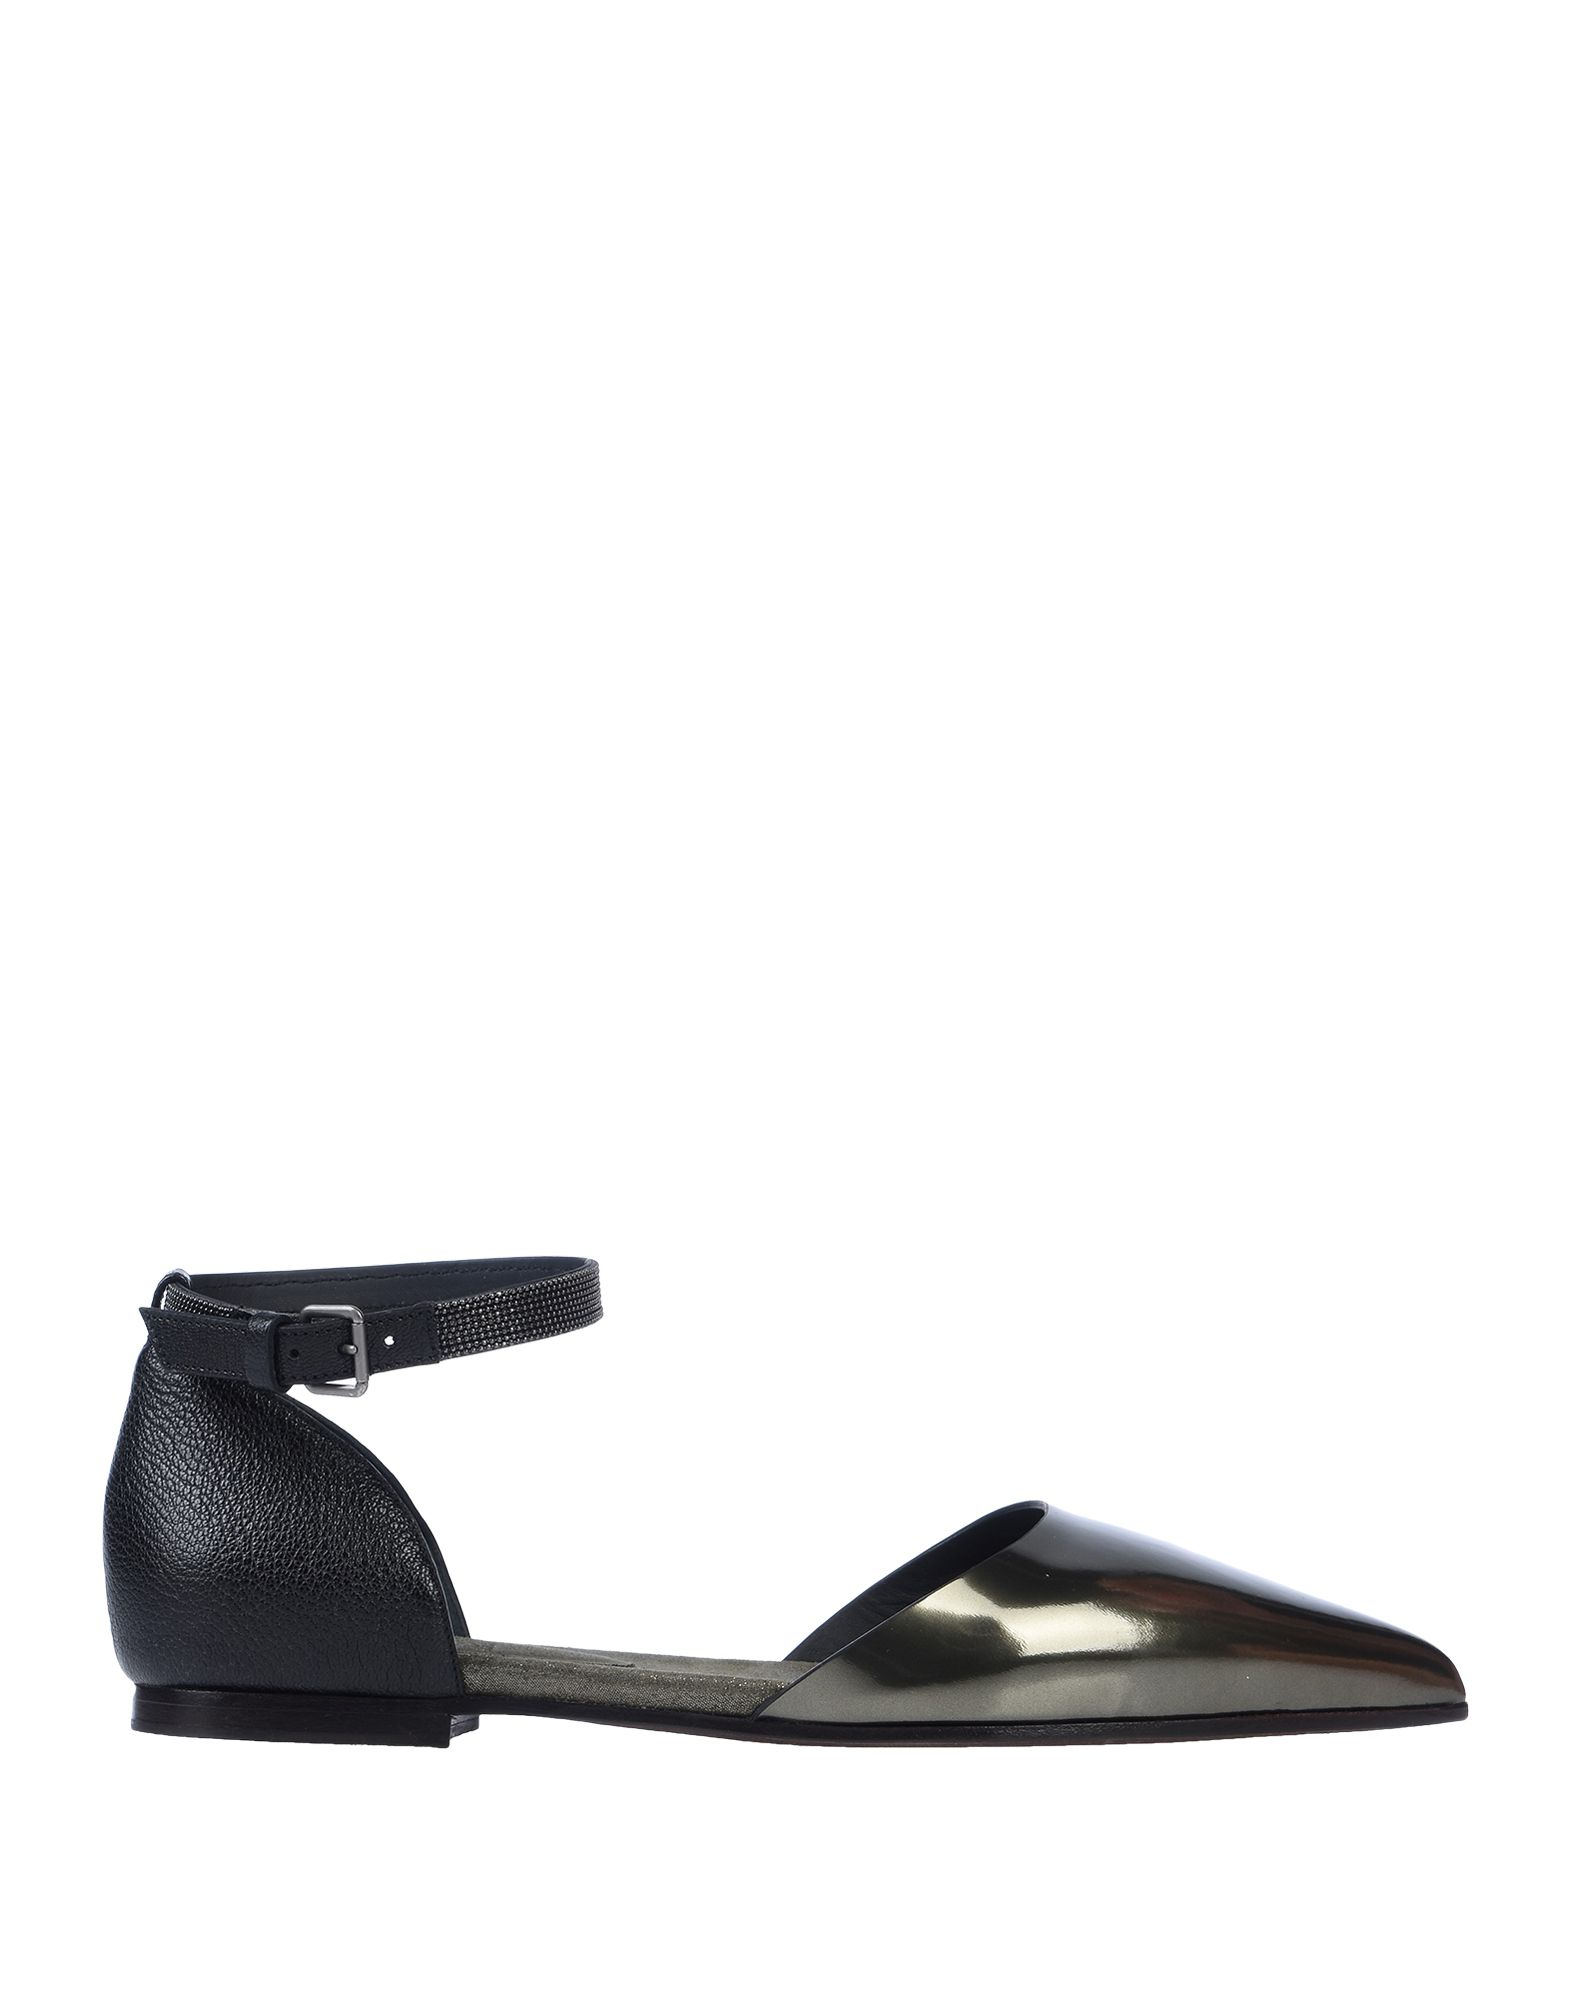 BRUNELLO CUCINELLI Ballet flats. leather, textured leather, laminated effect, metal applications, solid color, narrow toeline, flat, leather lining, rubber sole, buckling ankle strap closure, contains non-textile parts of animal origin. Soft Leather